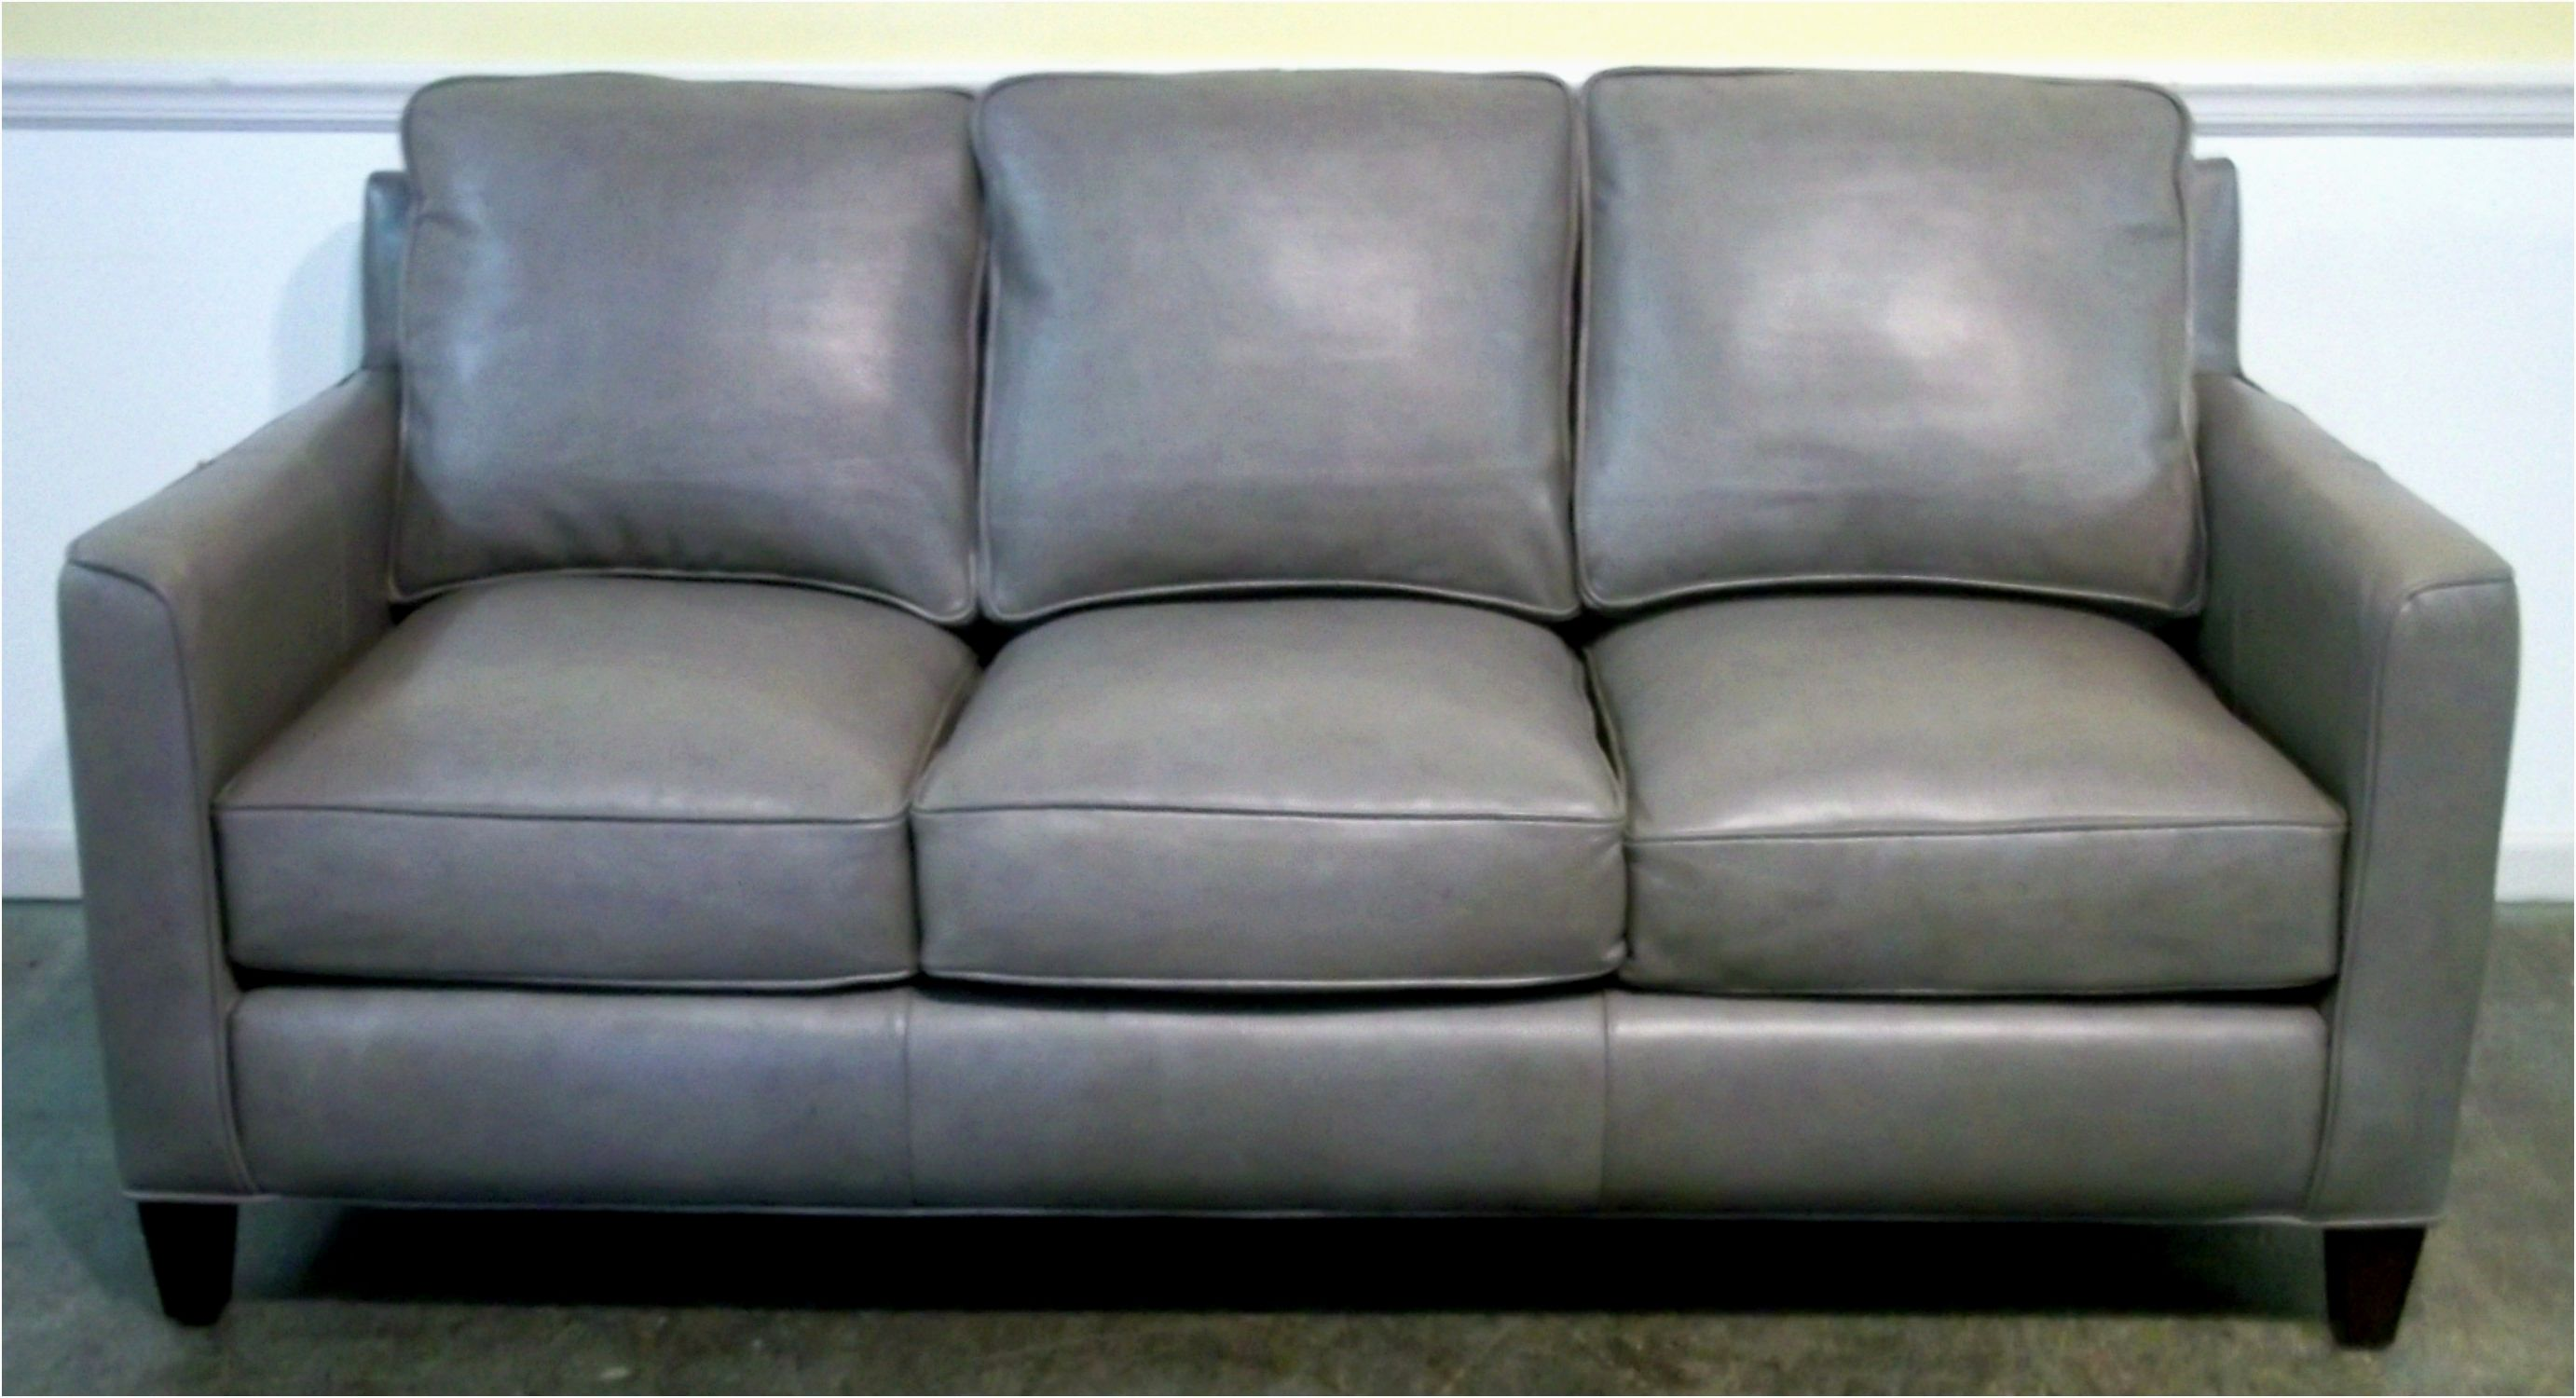 latest gray tufted sofa photograph-Stylish Gray Tufted sofa Layout